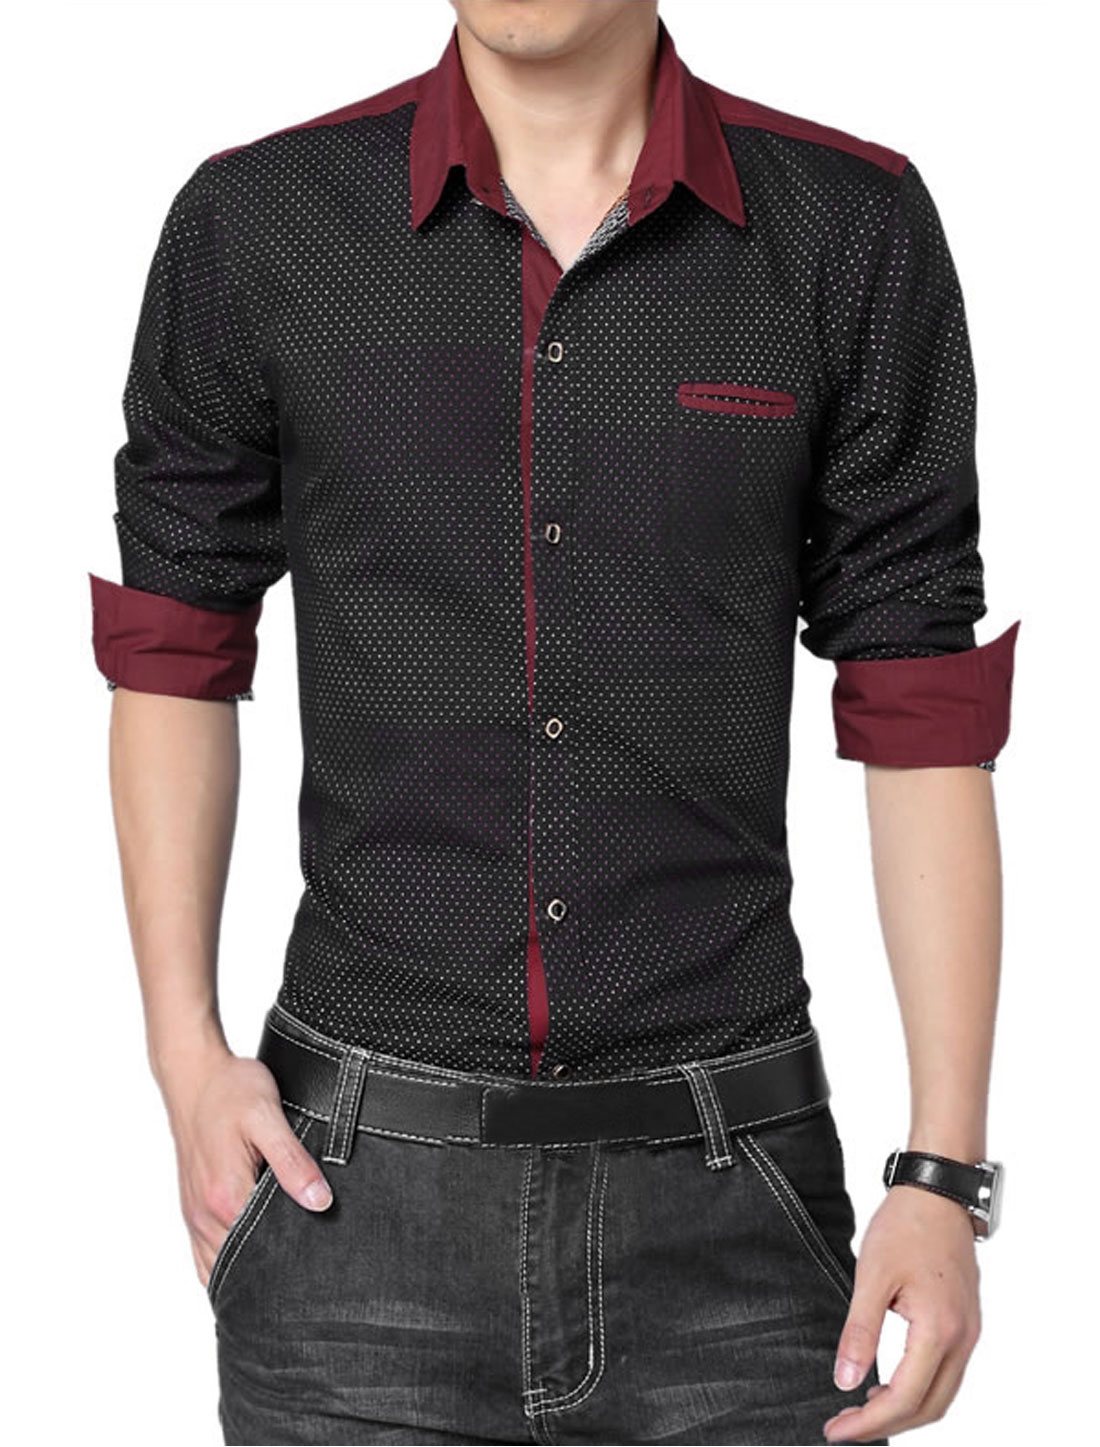 Men Stylish Single Breasted Embroidery Design Leisure Shirt Black L